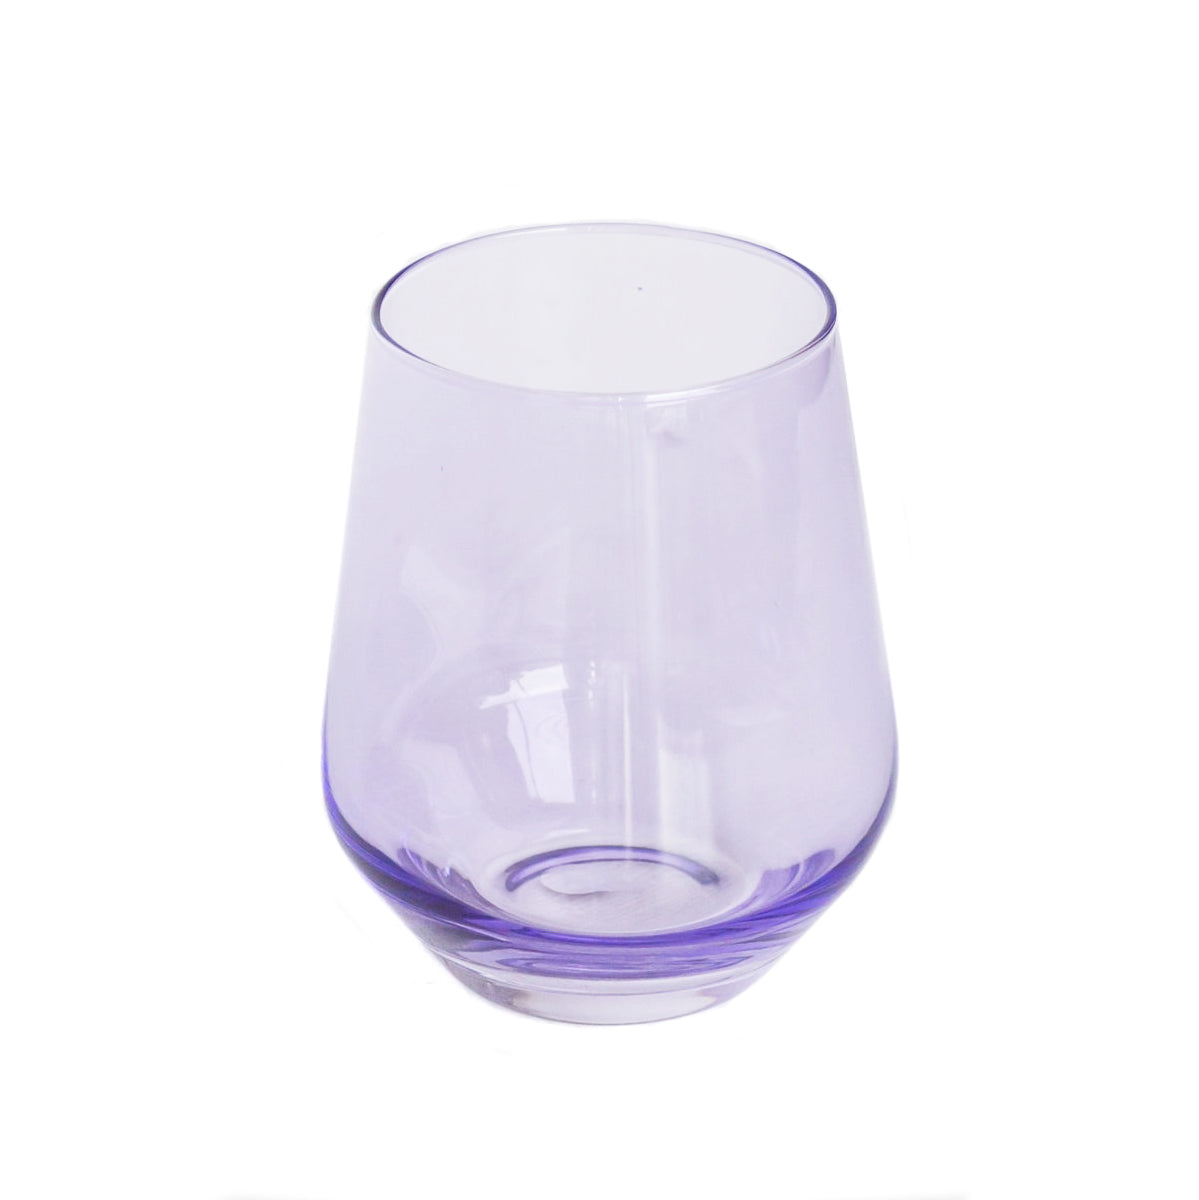 Handblown Lavender Purple Colored Stemless Wine Glass